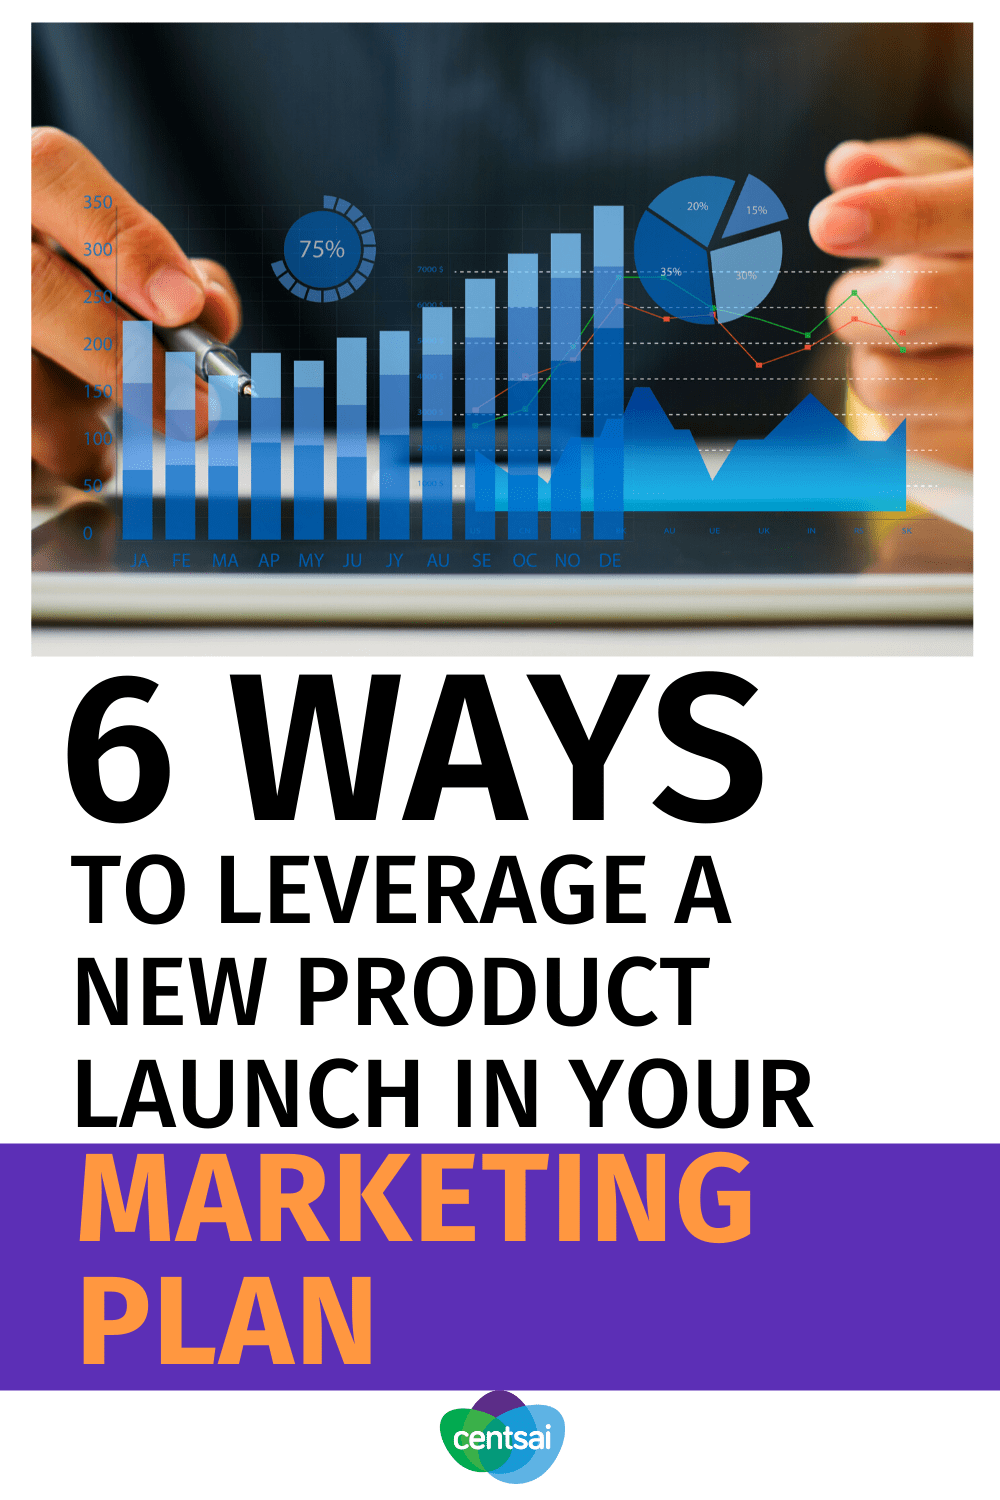 6 Ways to Leverage a New Product Launch in Your Marketing Plan